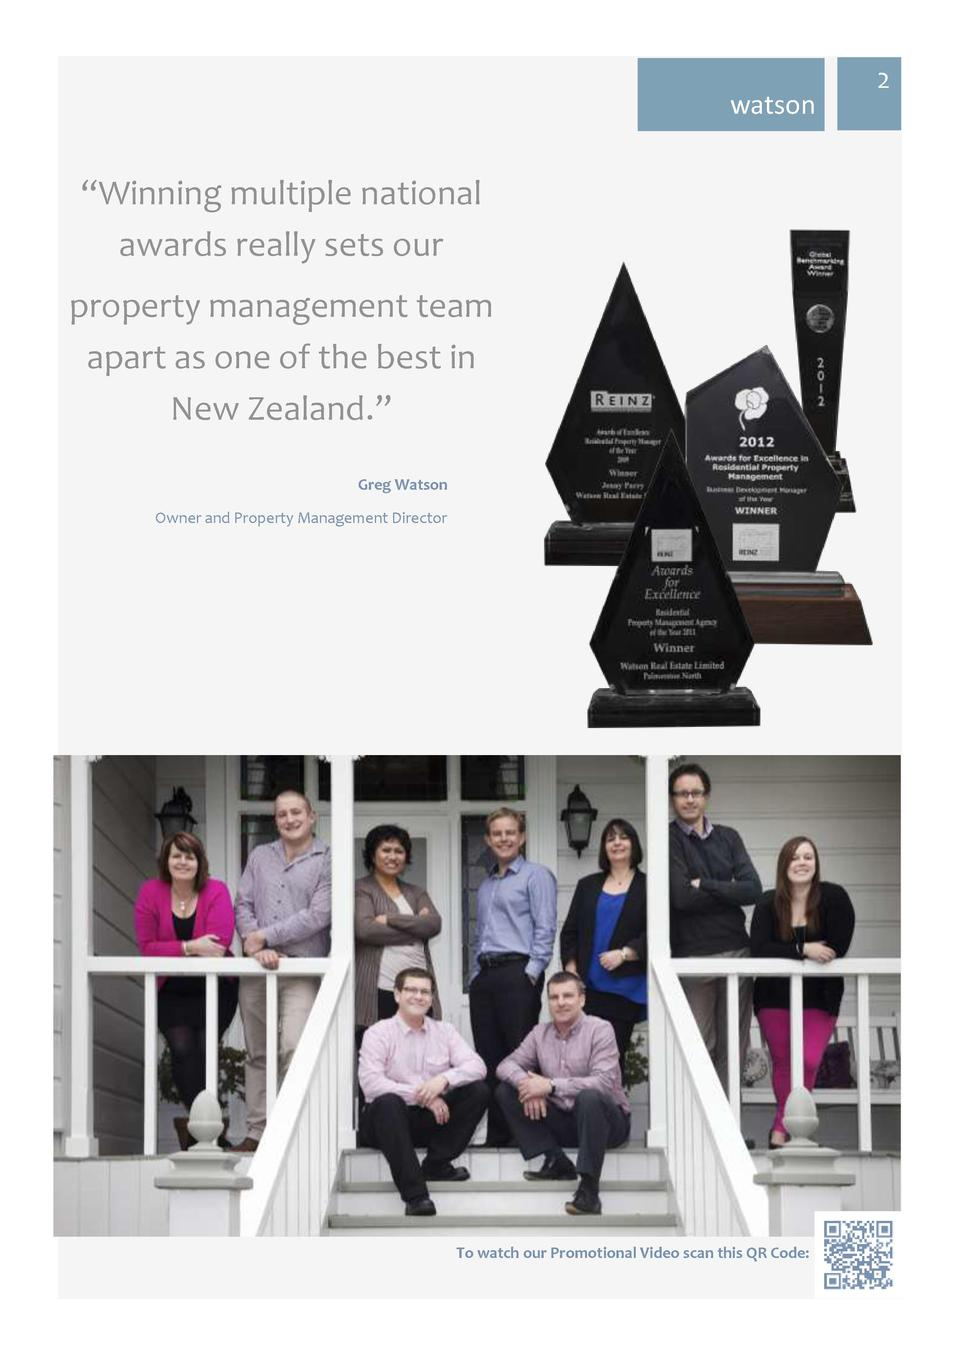 watson     Winning multiple national awards really sets our property management team apart as one of the best in New Zeala...